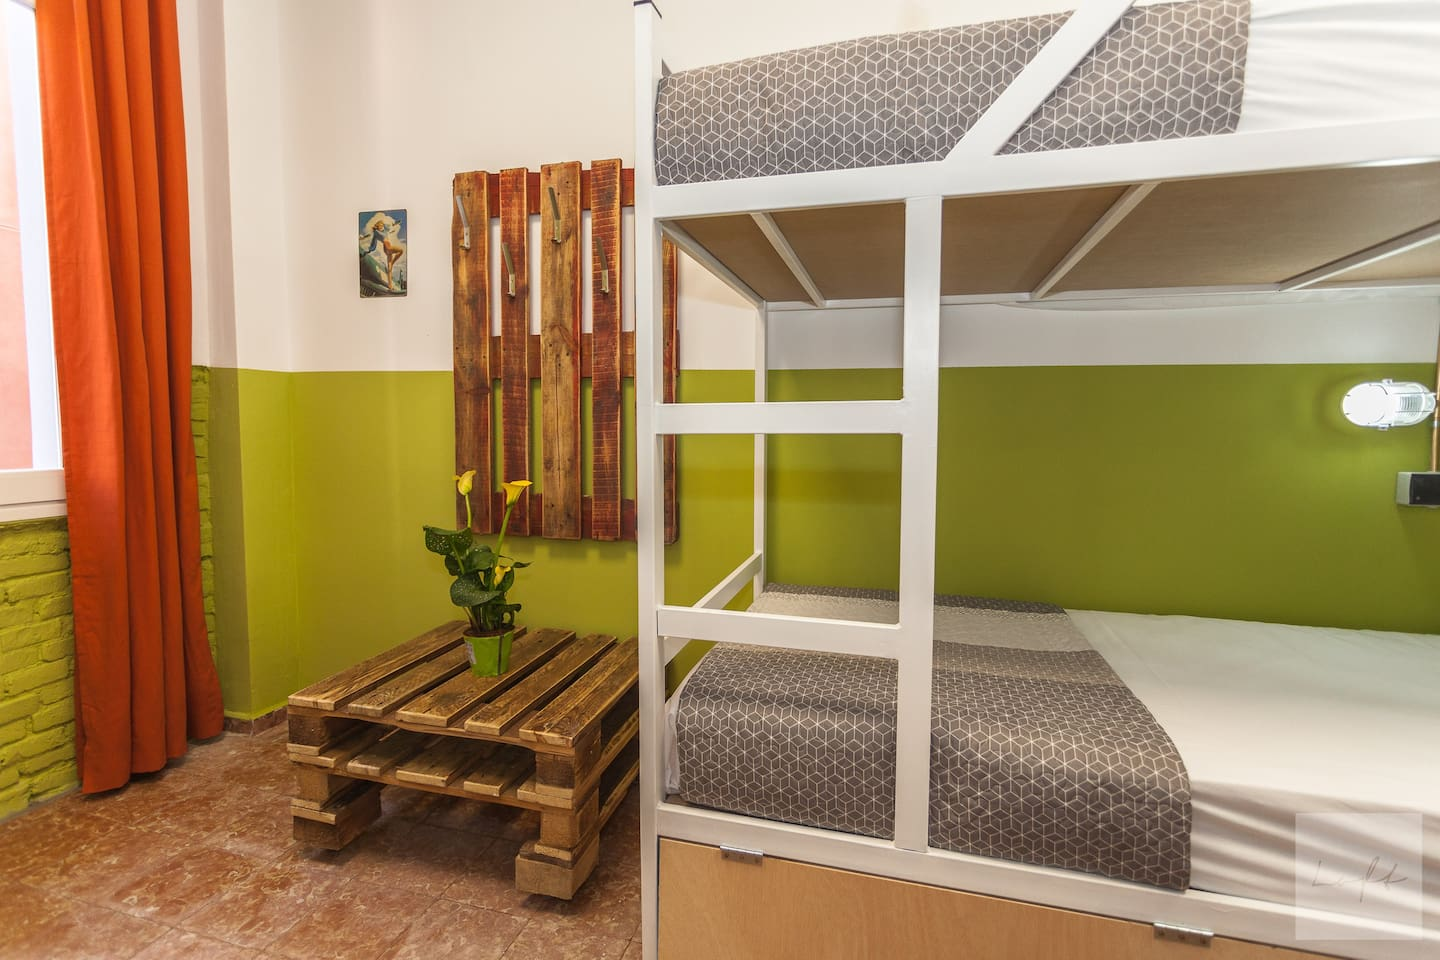 Bed in 6 Bed Room (Private Bathroom)